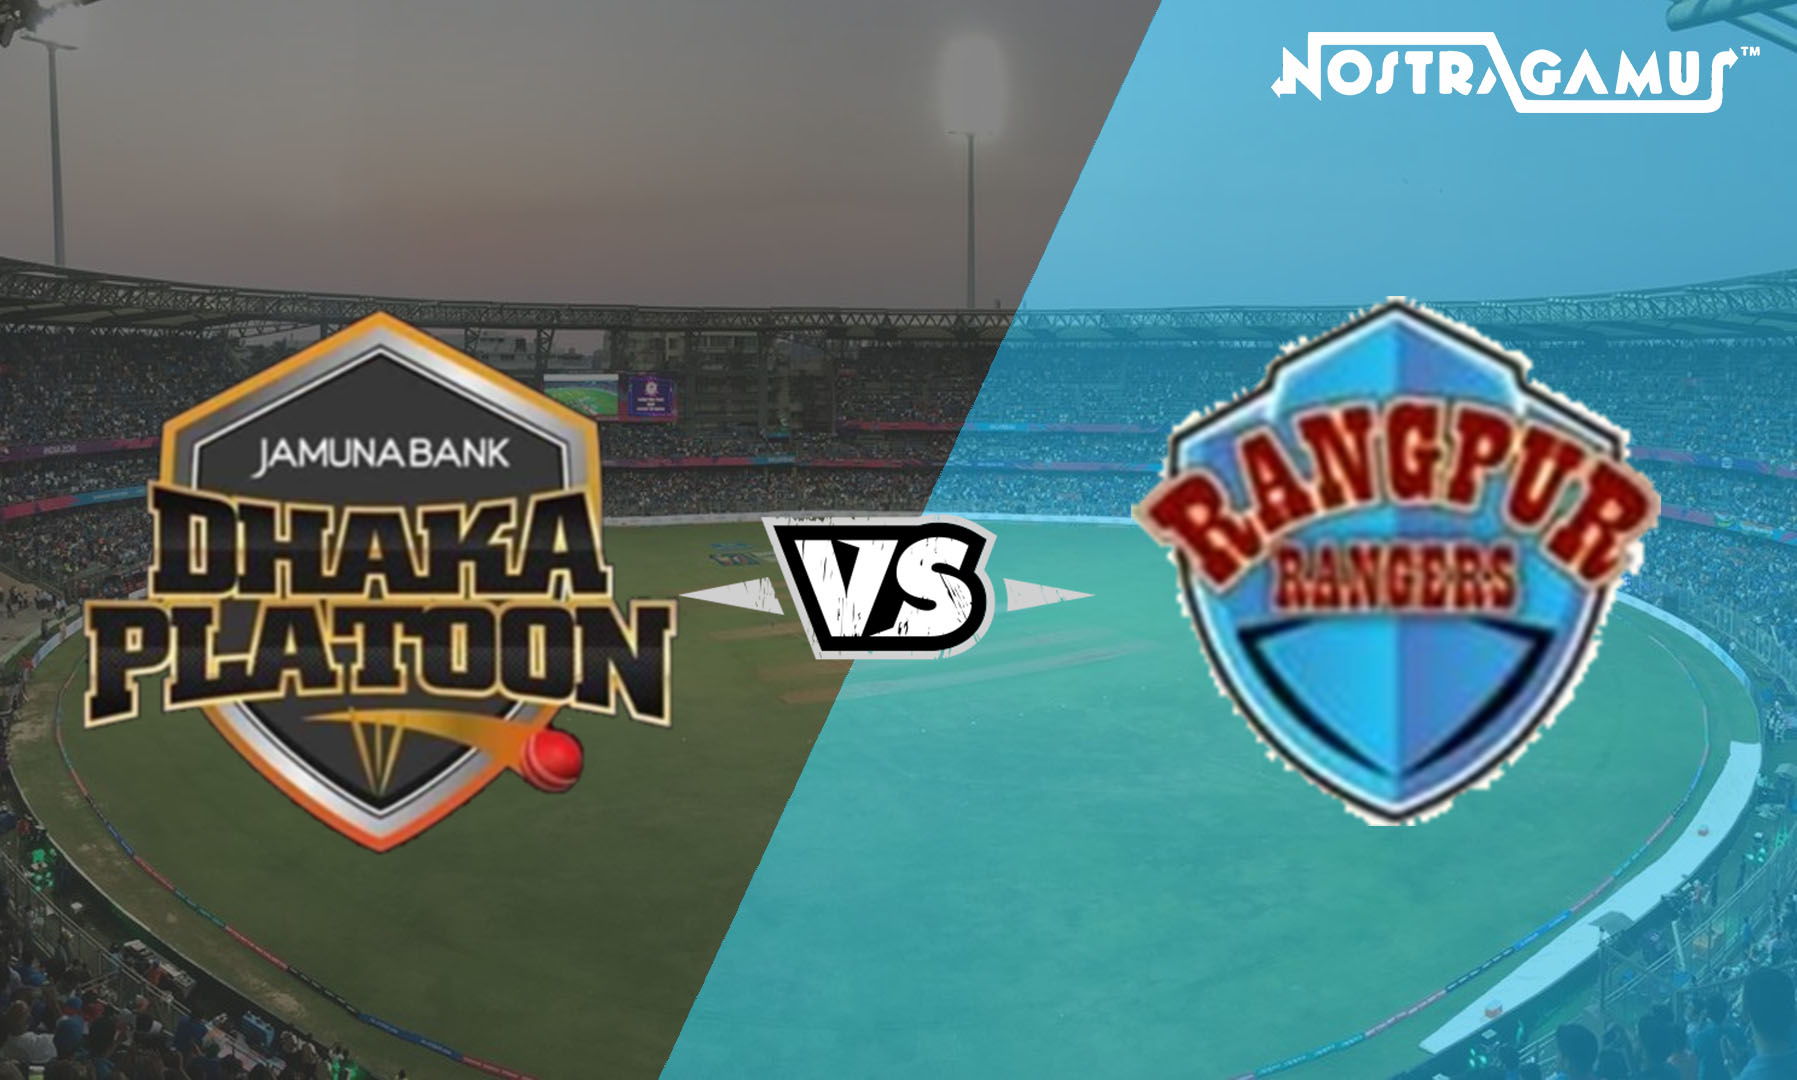 BPL 2019 Match Prediction: Dhaka Platoon vs Rangpur Rangers